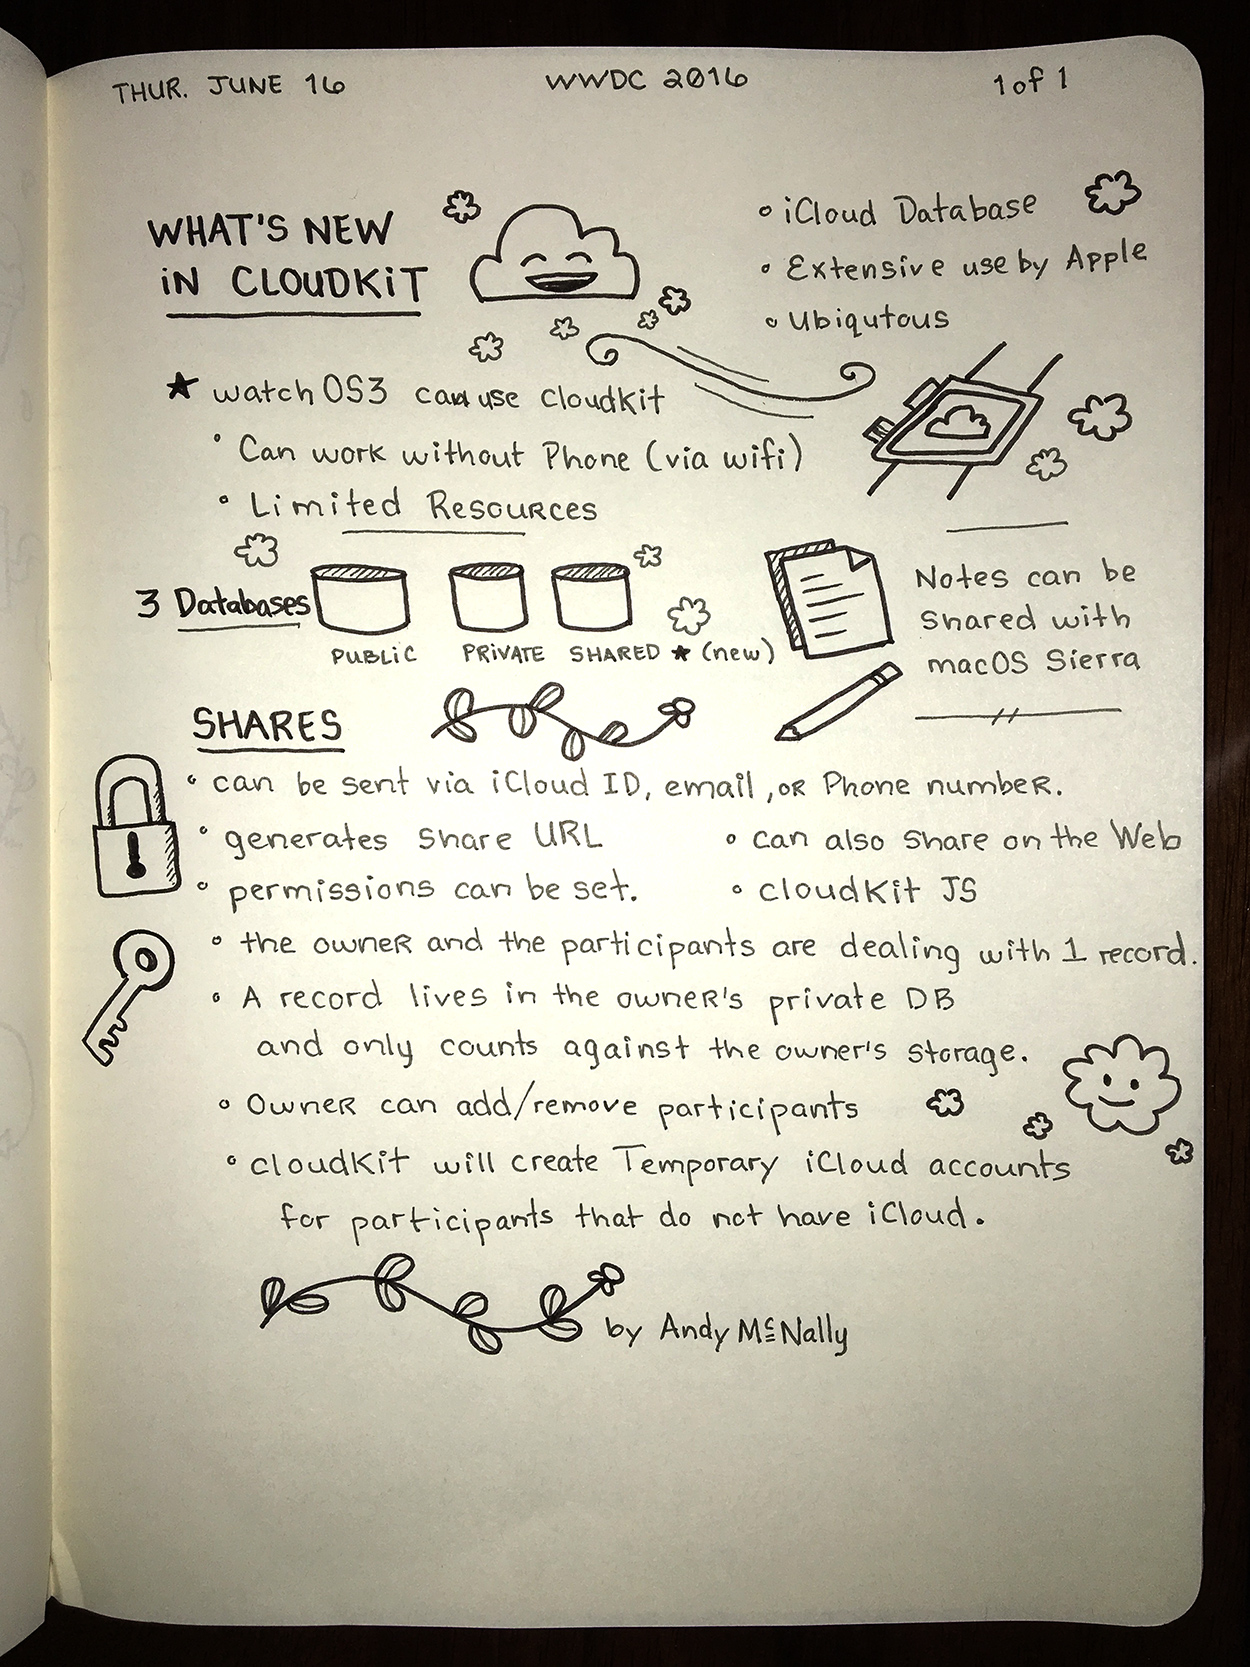 WWDC sketchnotes - What's New in CloudKit